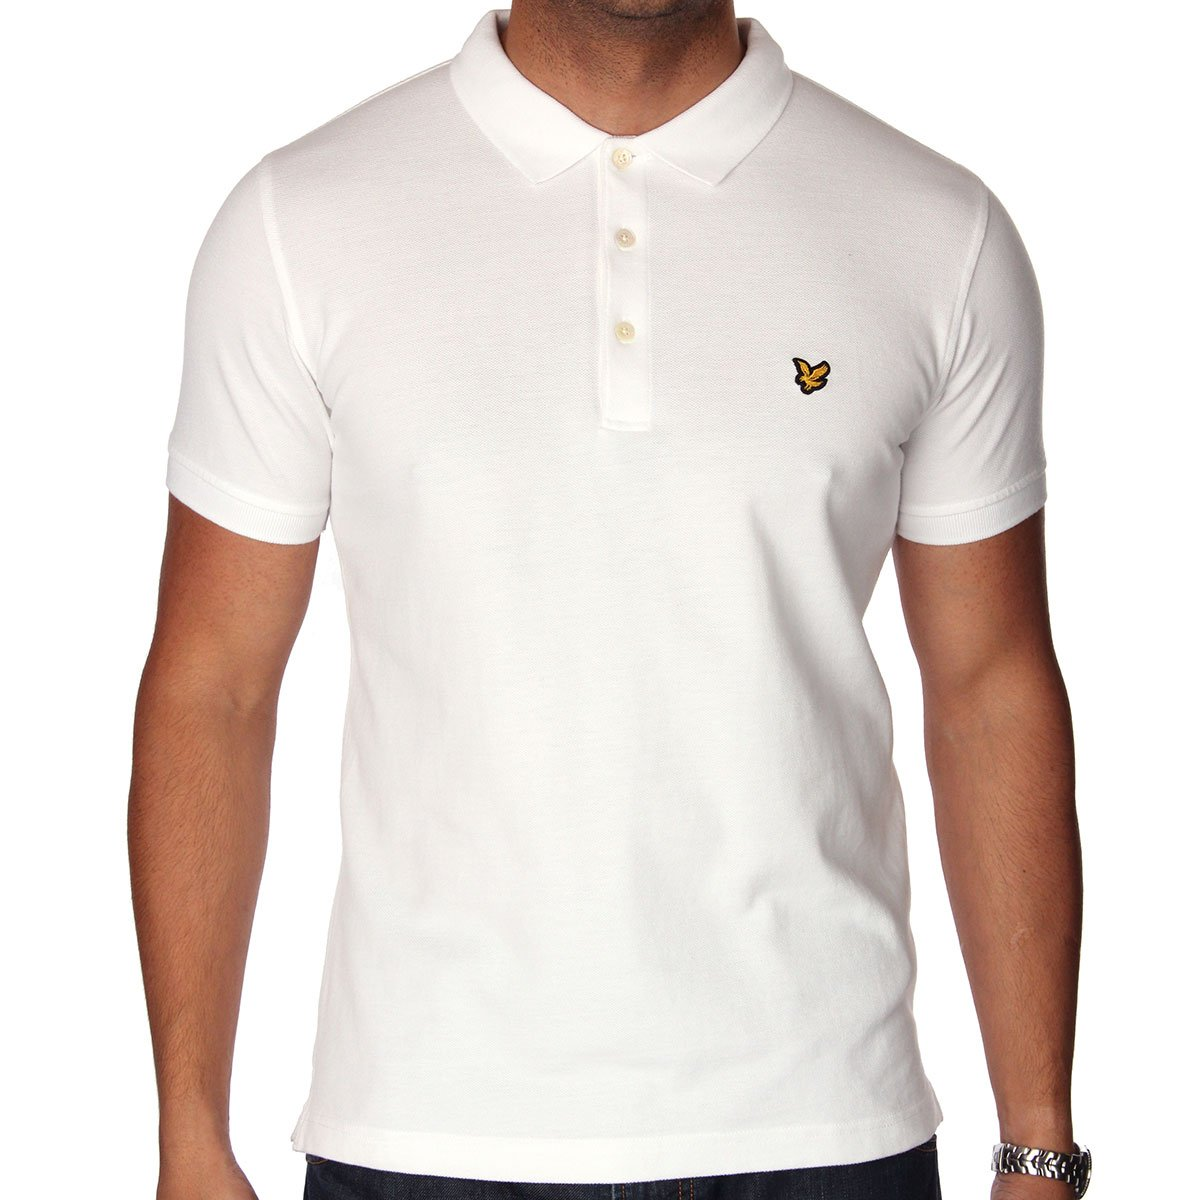 lyle scott vintage polo t shirt various colours sizes available bnwt ebay. Black Bedroom Furniture Sets. Home Design Ideas